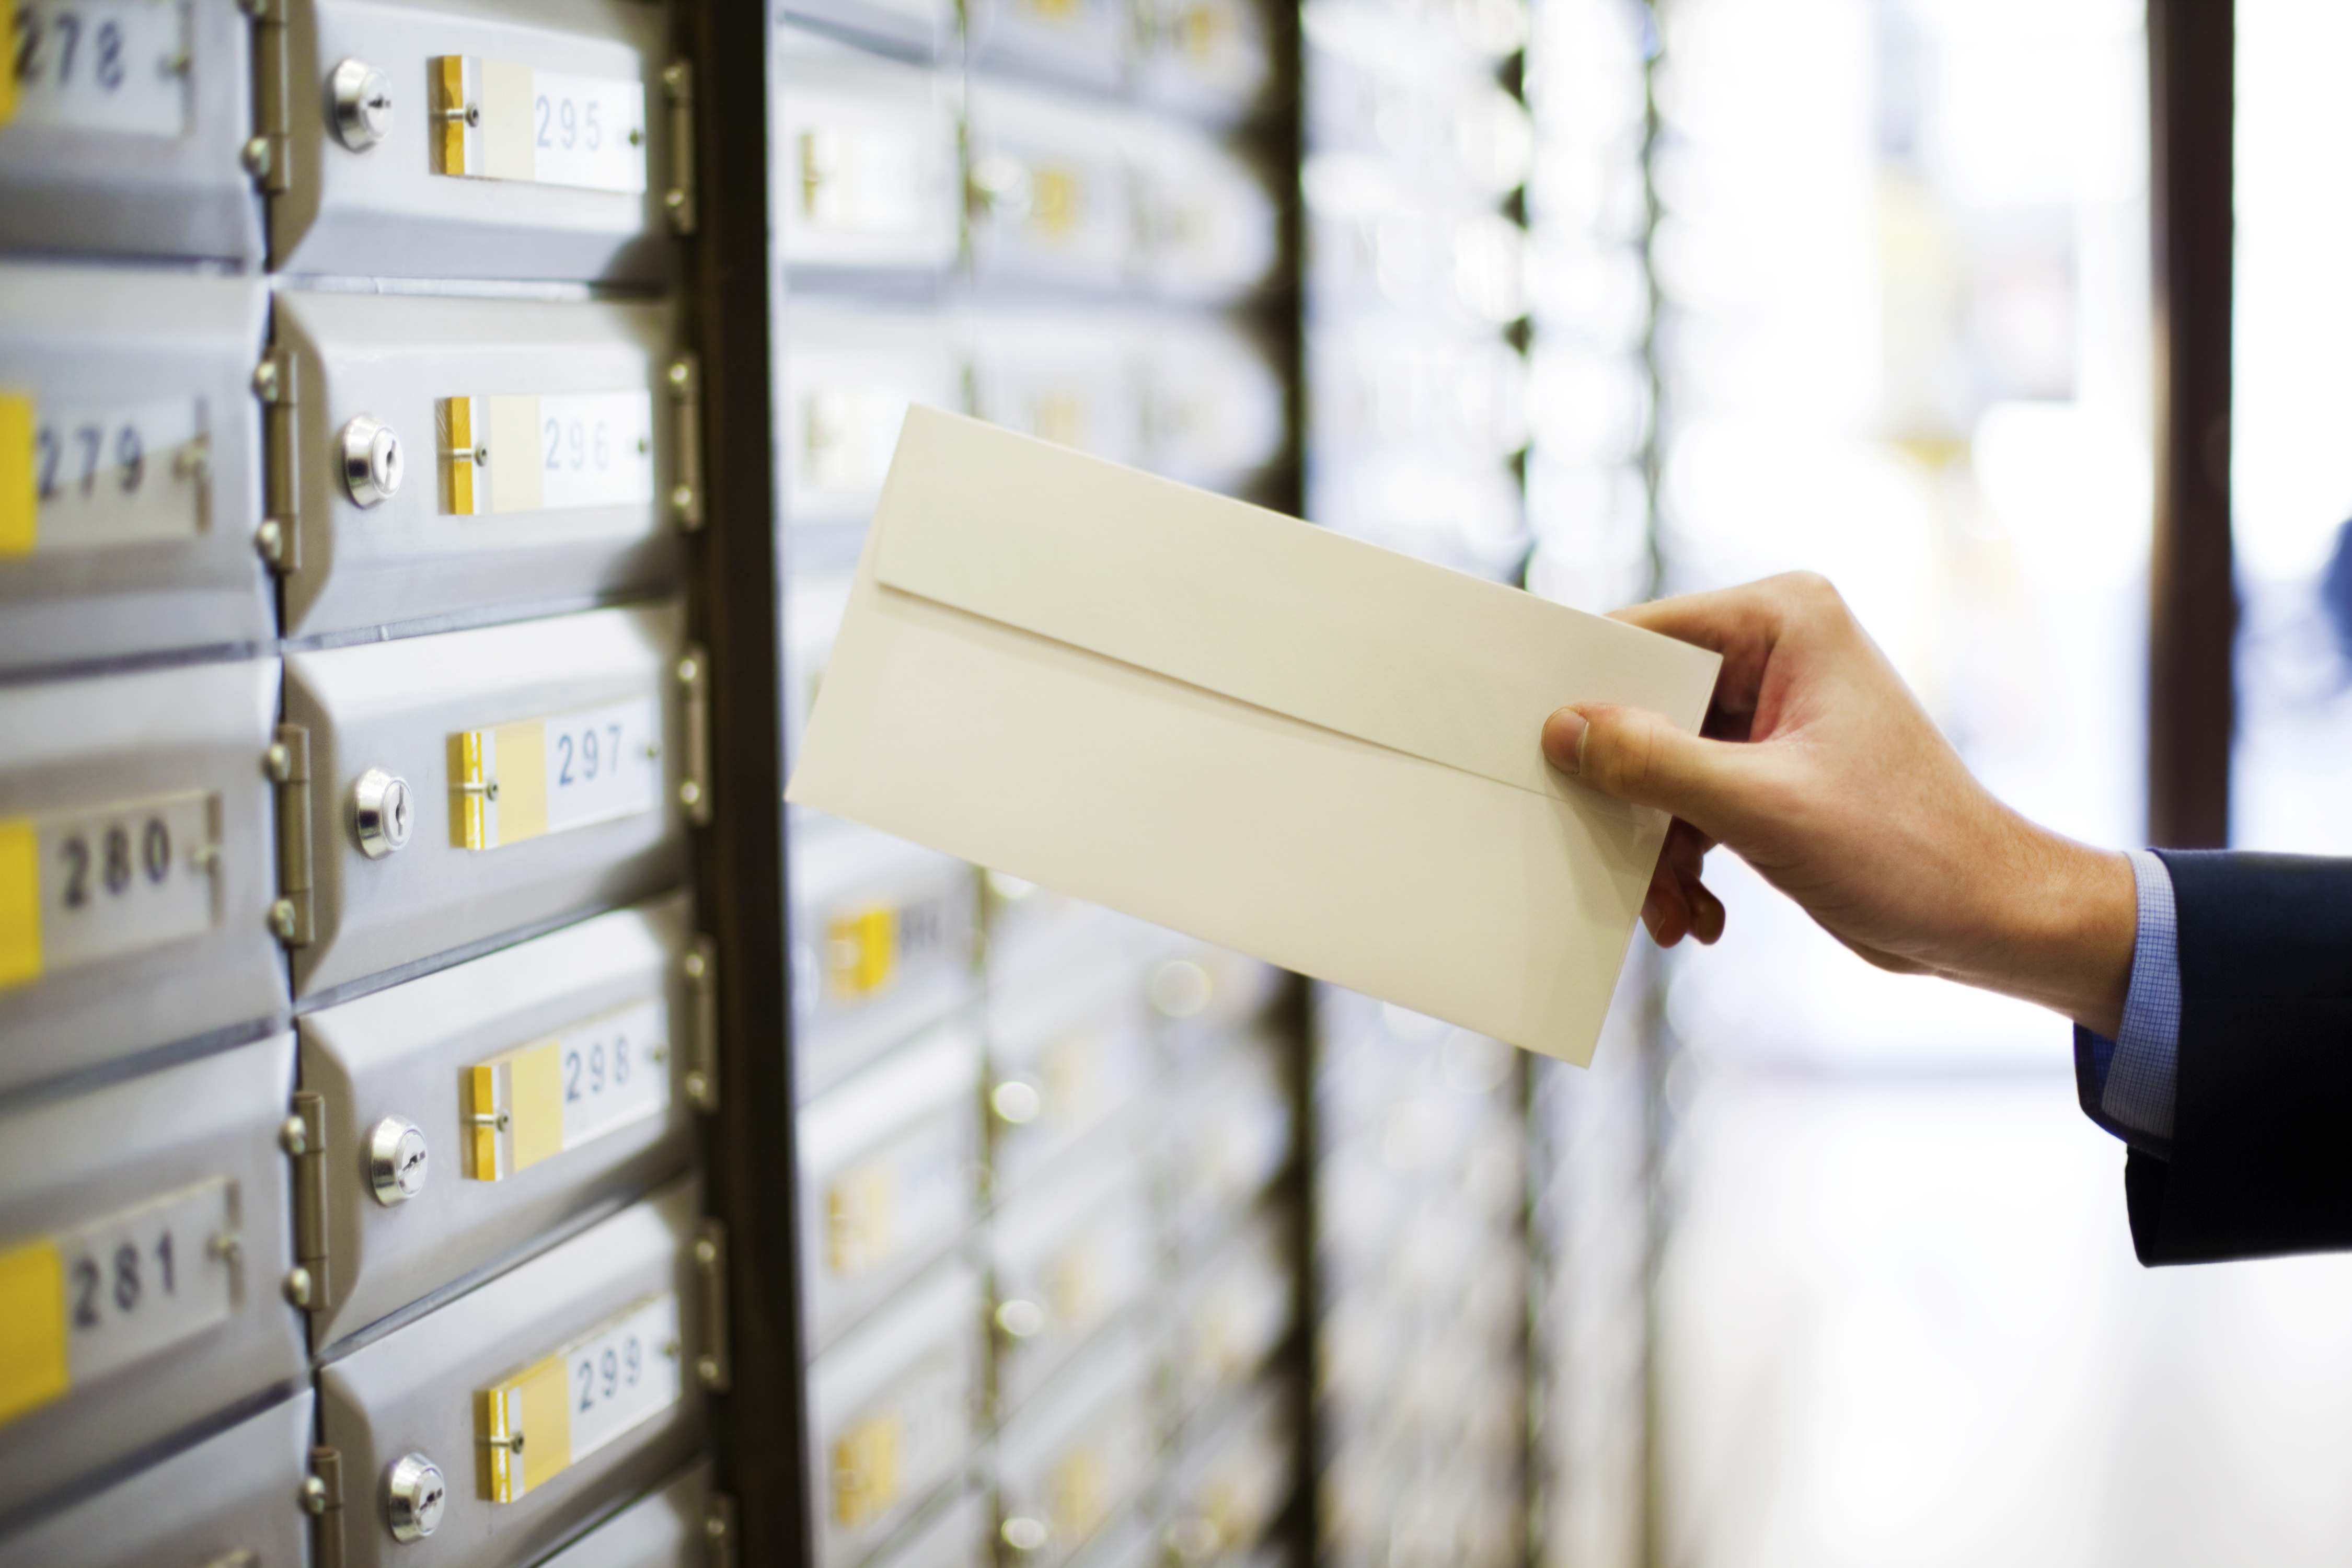 Definitions of Certified Mail and Registered Mail | Chron com